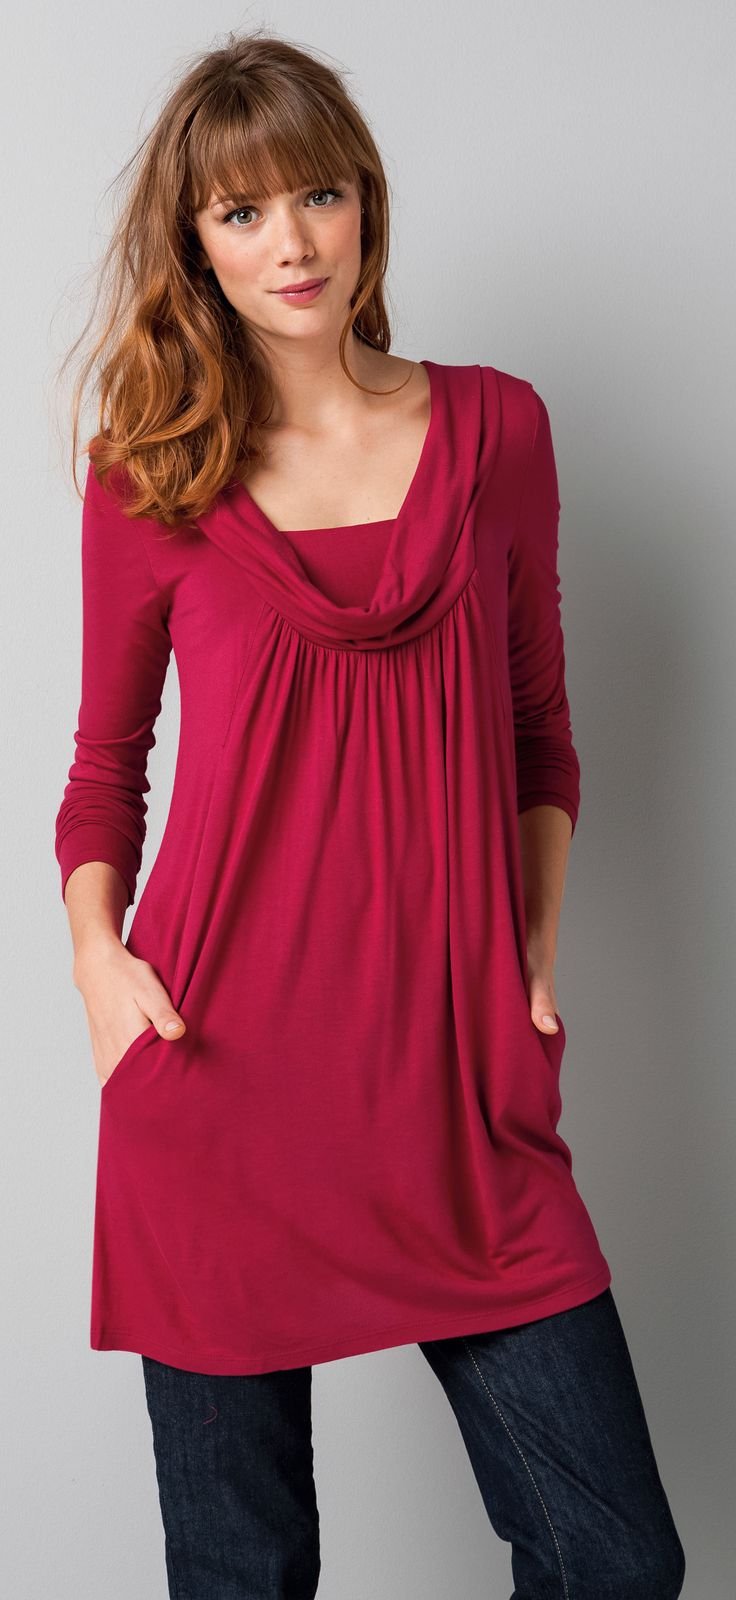 Clothes for over 50 women